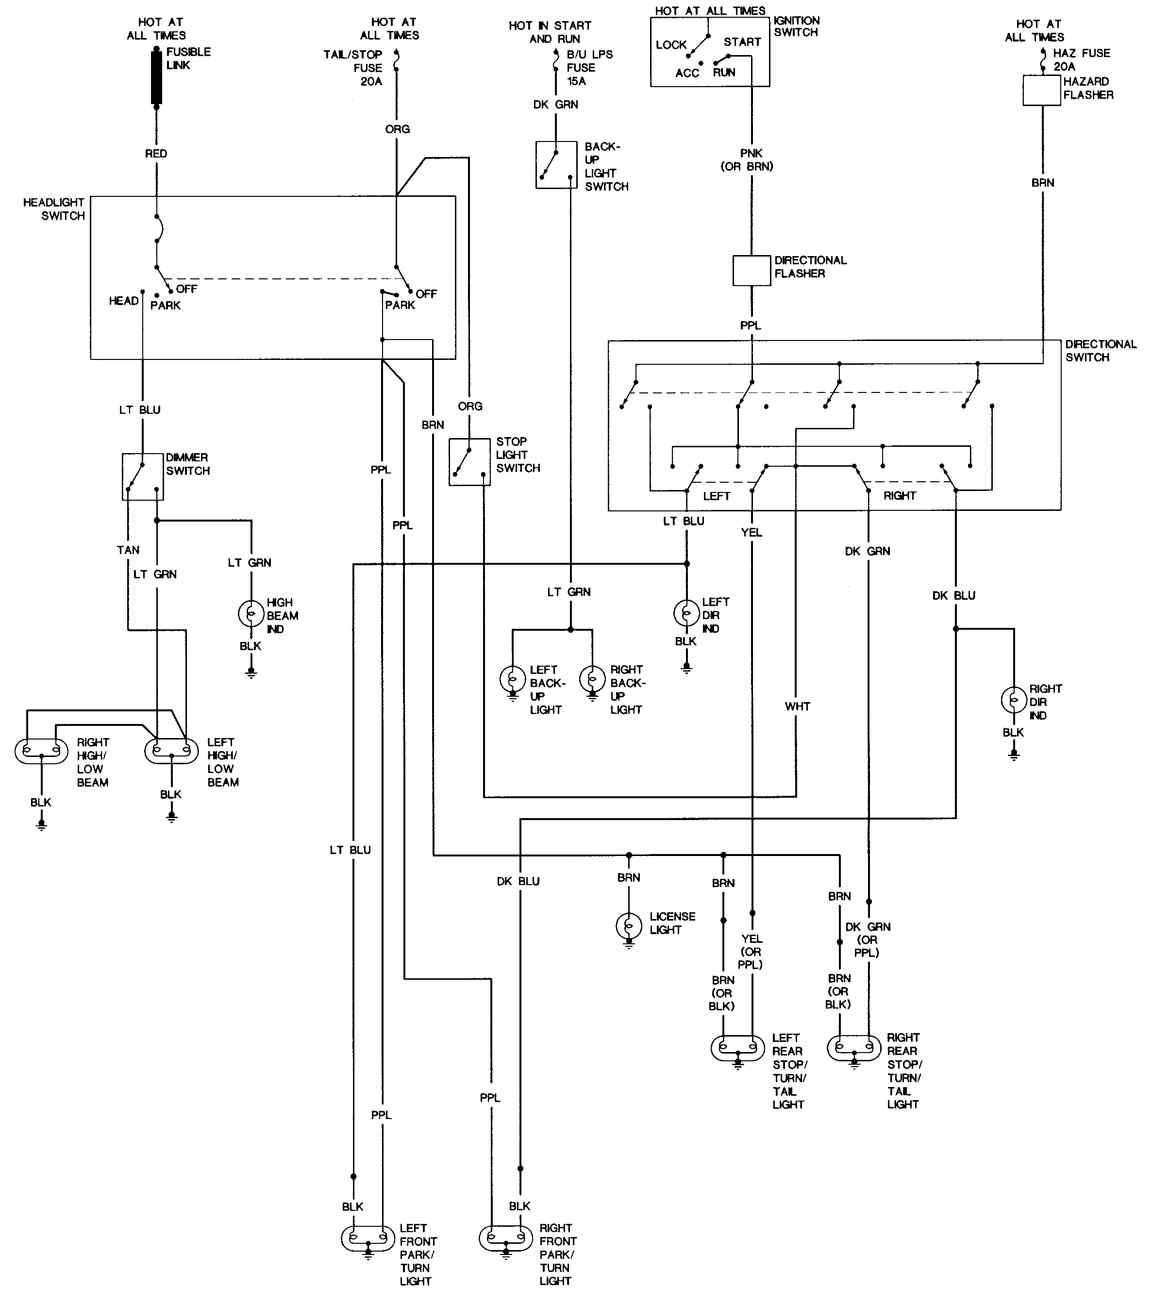 67 c10 chassis wiring diagram